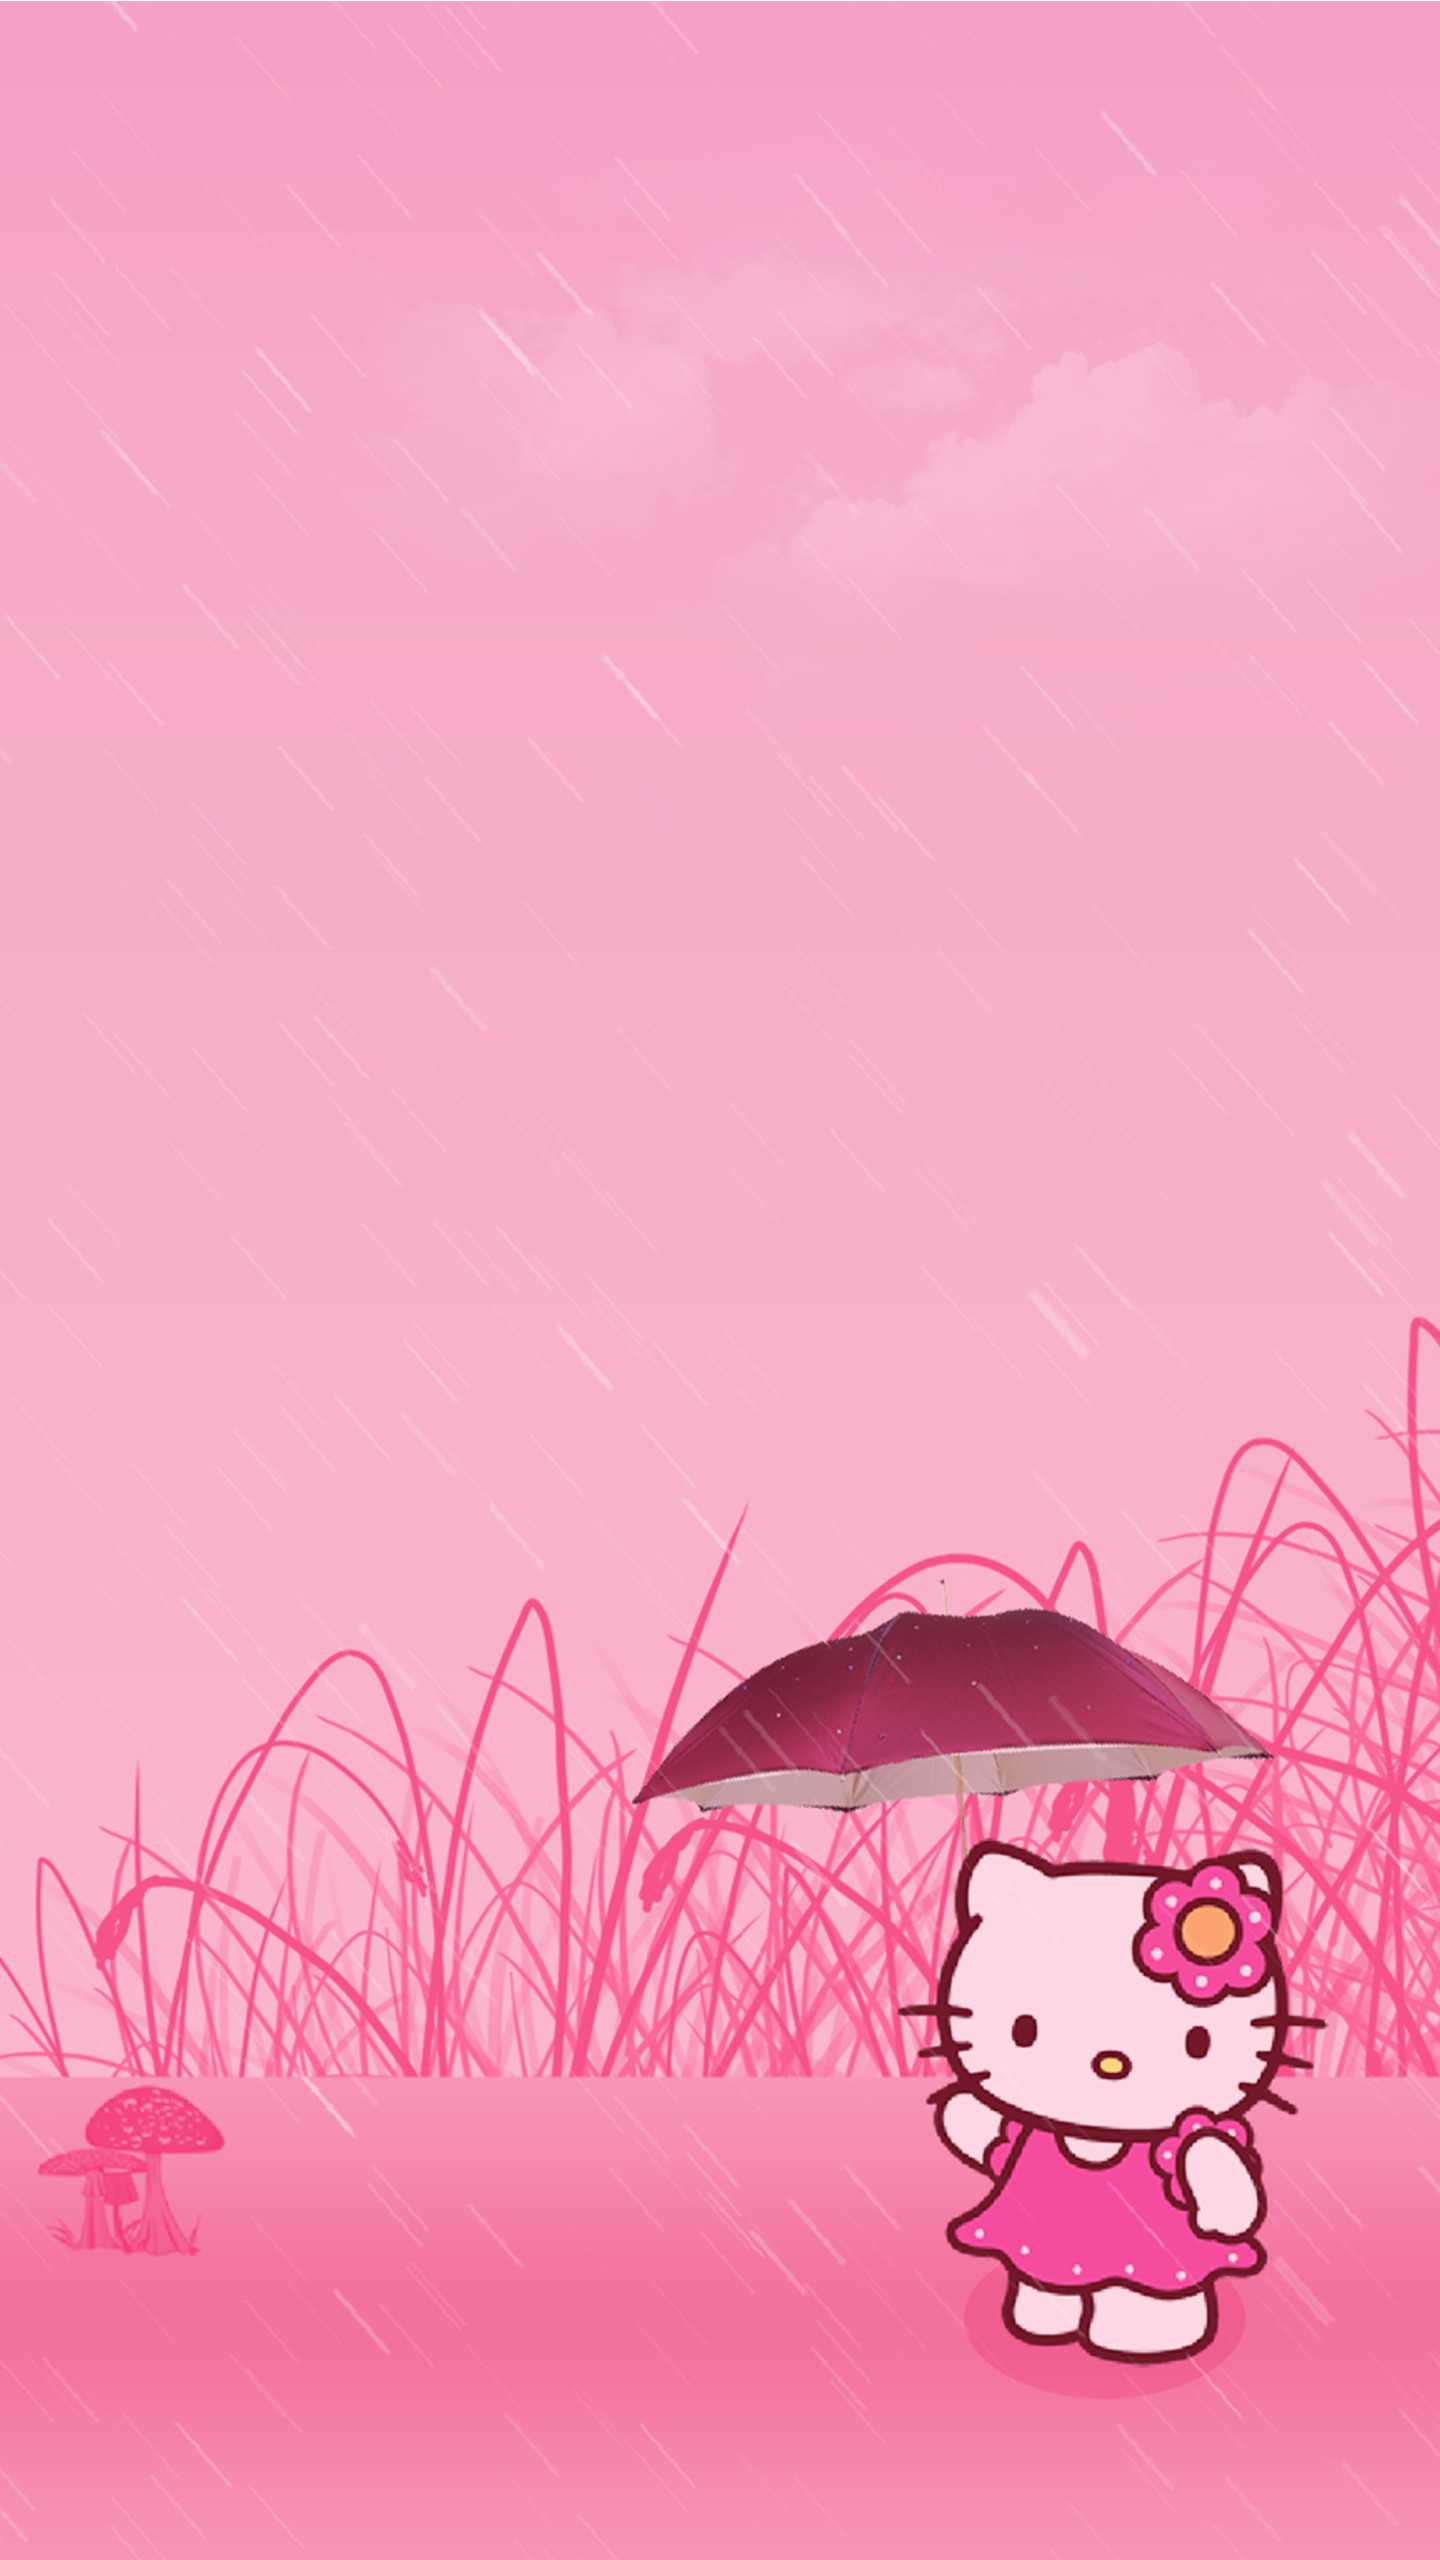 Start Download   Iphone Wallpaper Hello Kitty 136102   HD 1080x1920